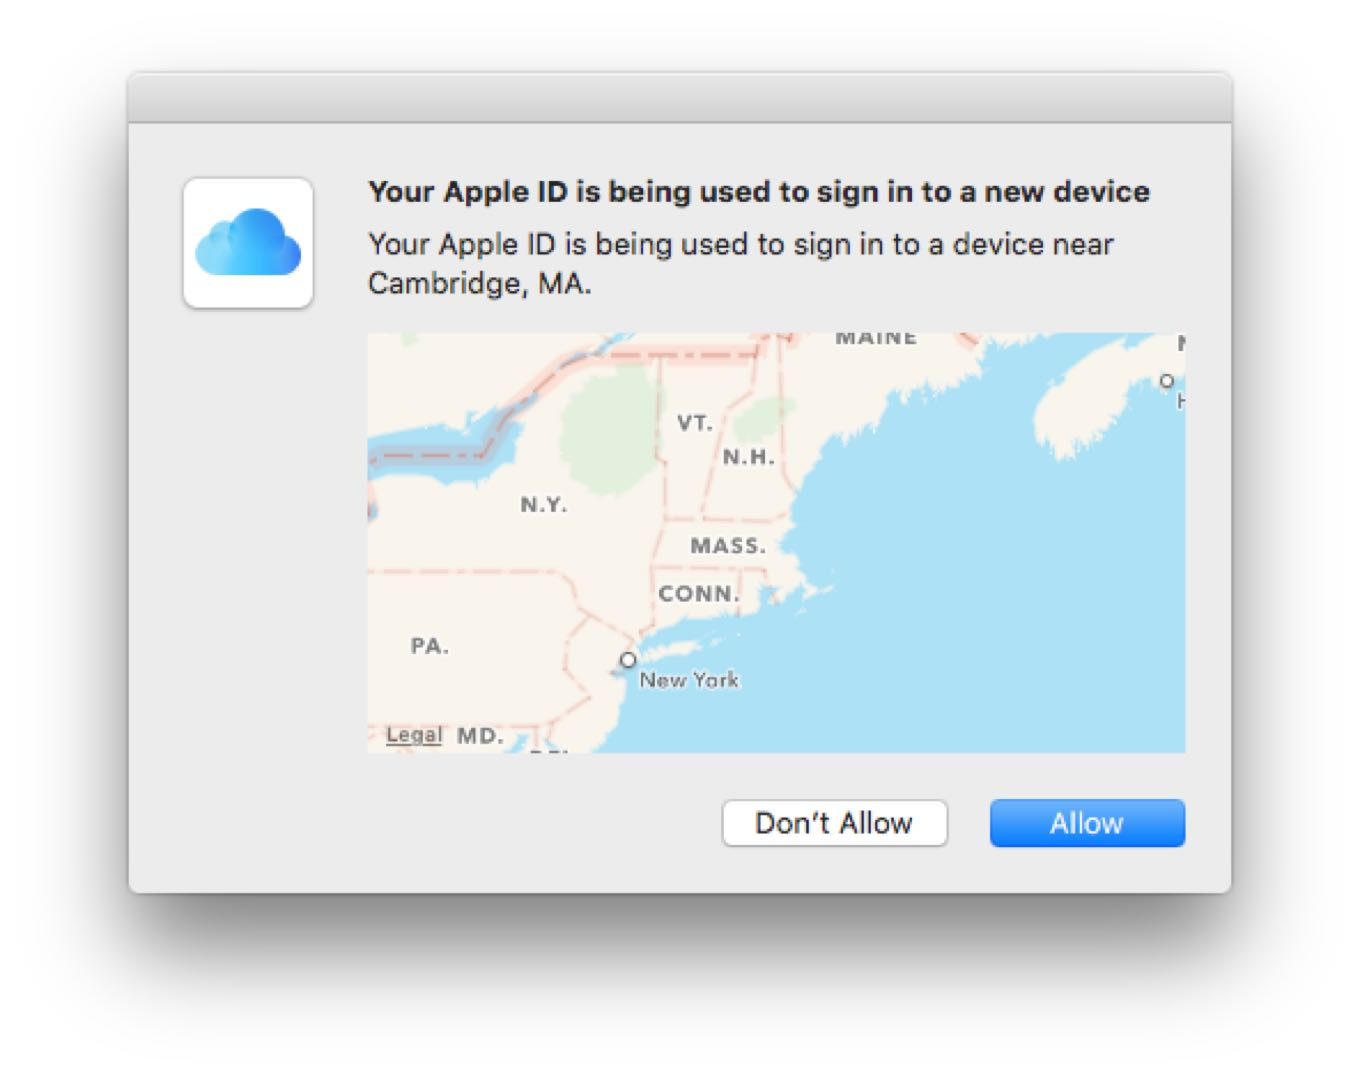 Why two-factor authentication incorrectly displays the location of the device